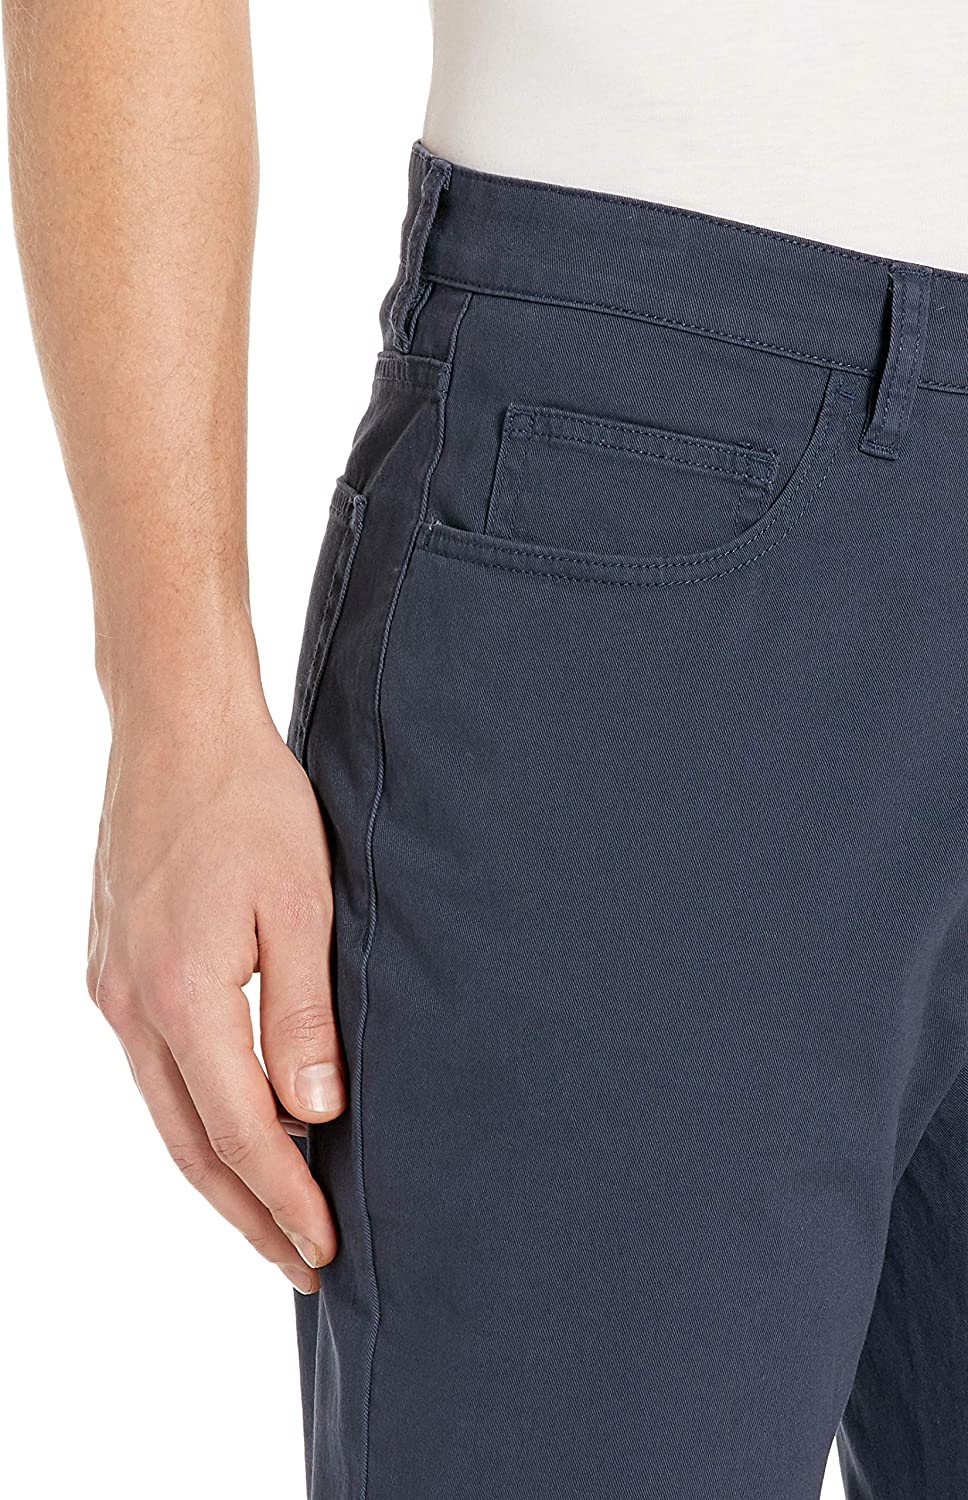 gui fang Mens Casual 5 Pants Youth Stretch Comfort Tie Shorts